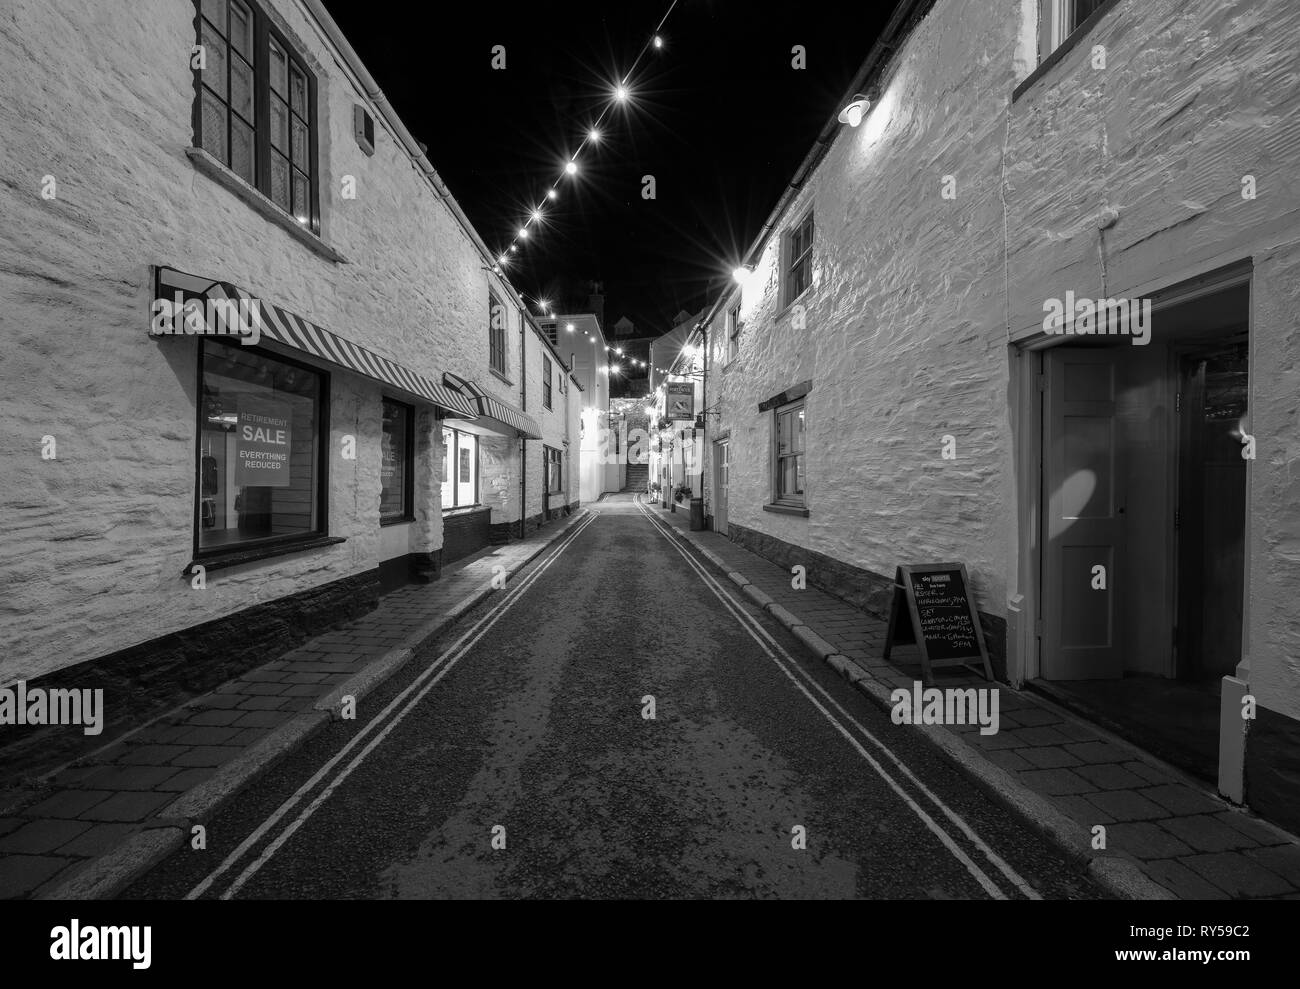 Salcombe town at Christmas. This seaside town gets all dressed up for Christmas. - Stock Image